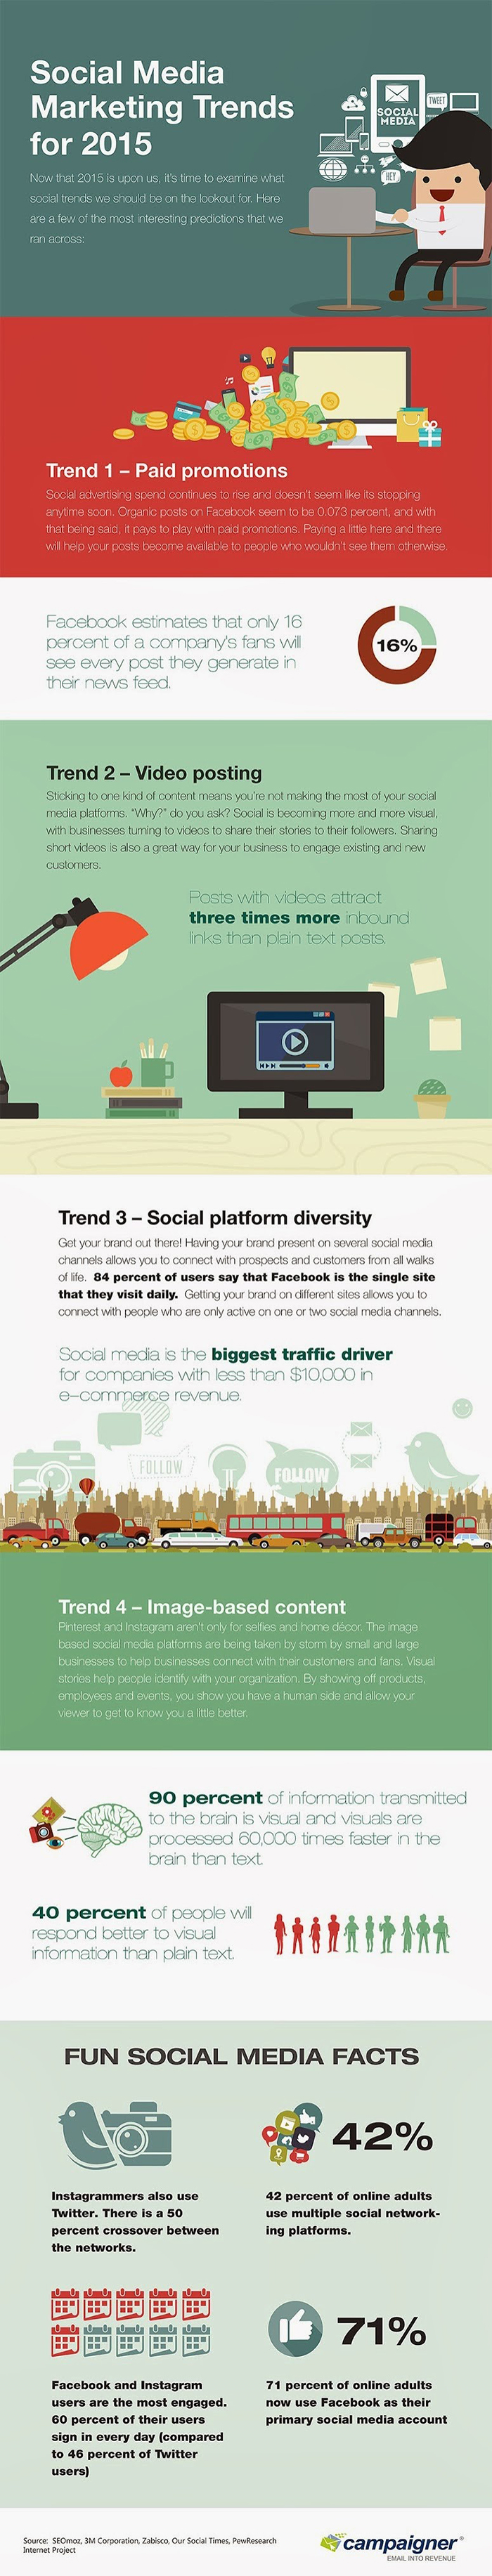 Social Media Marketing Trends For 2015 Infographic